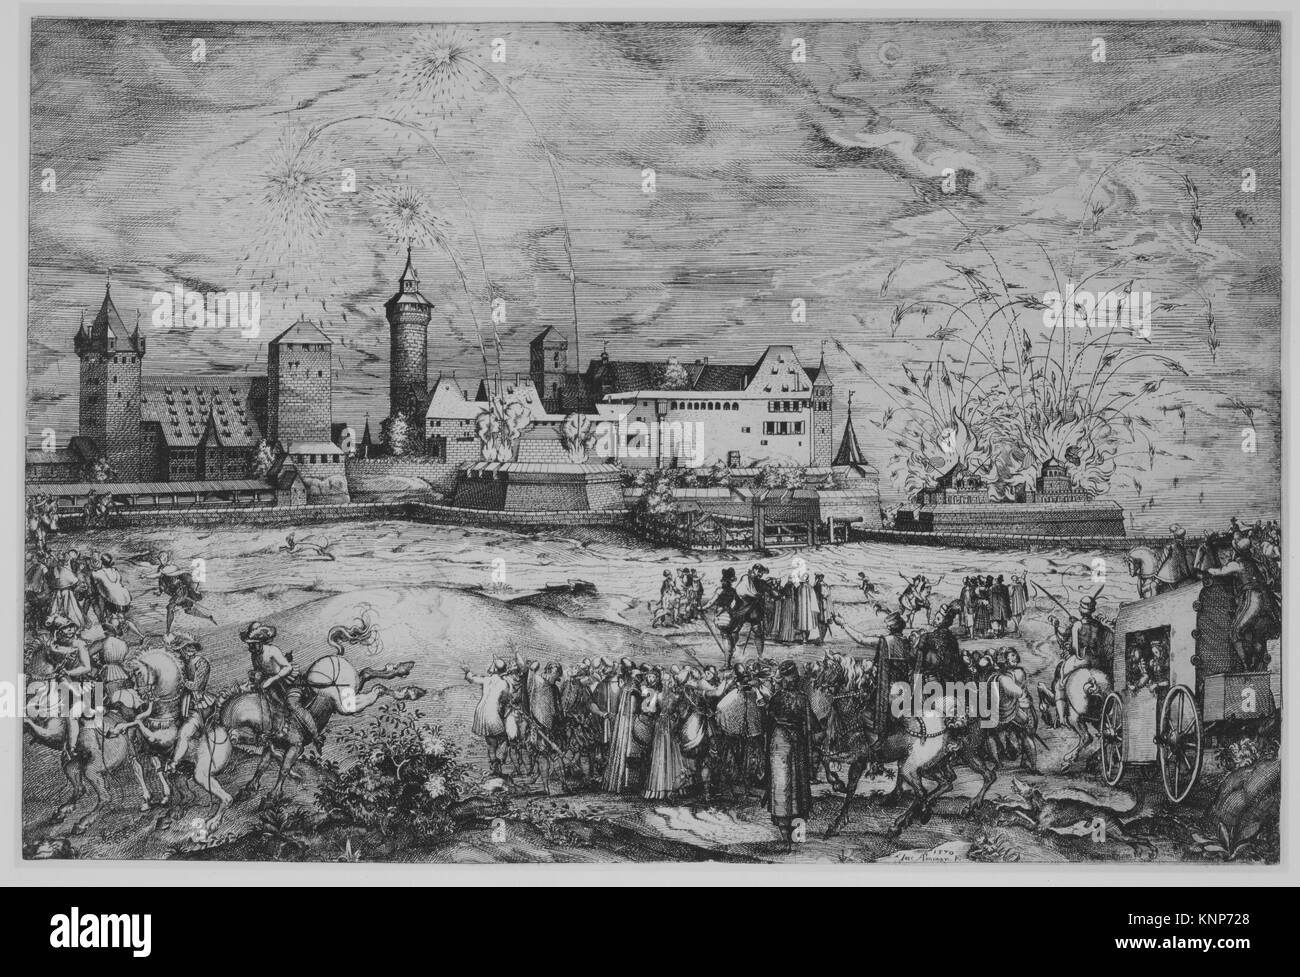 Entry of Maximilian II into Nuremberg, June 7, 1570. Artist: Jost Amman (Swiss, Zurich before 1539-1591 Nuremberg); - Stock Image